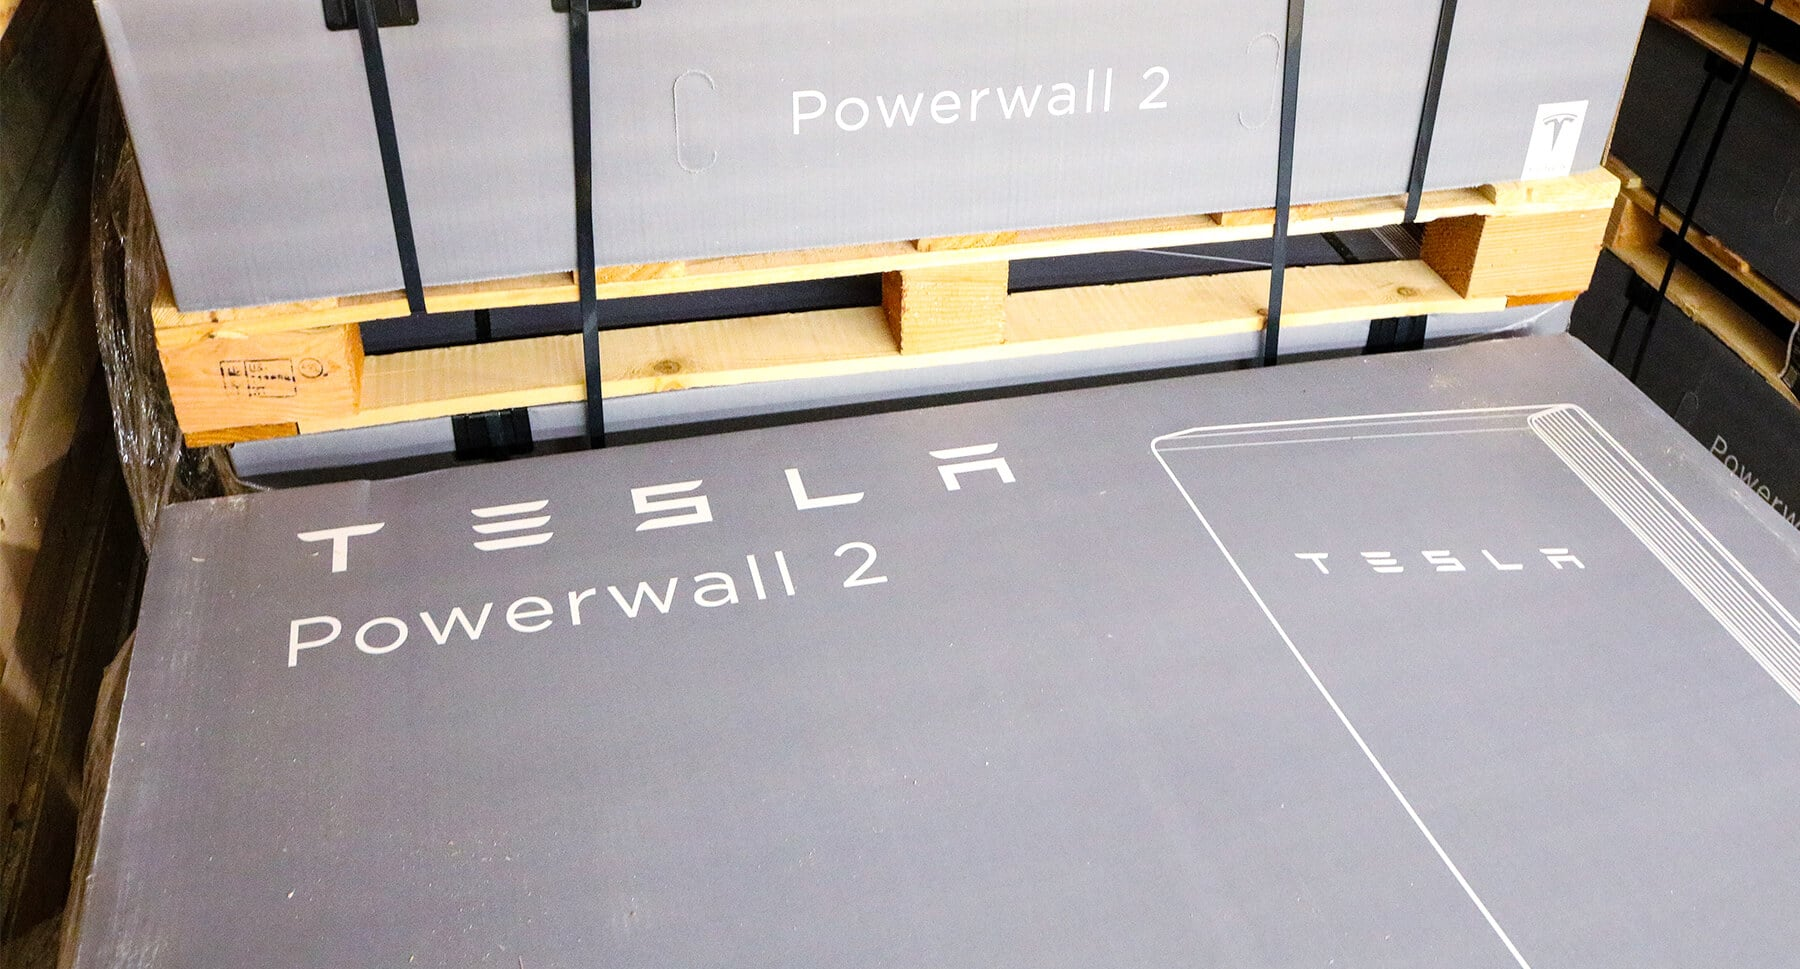 Tesla Powerwall 2 in gray box